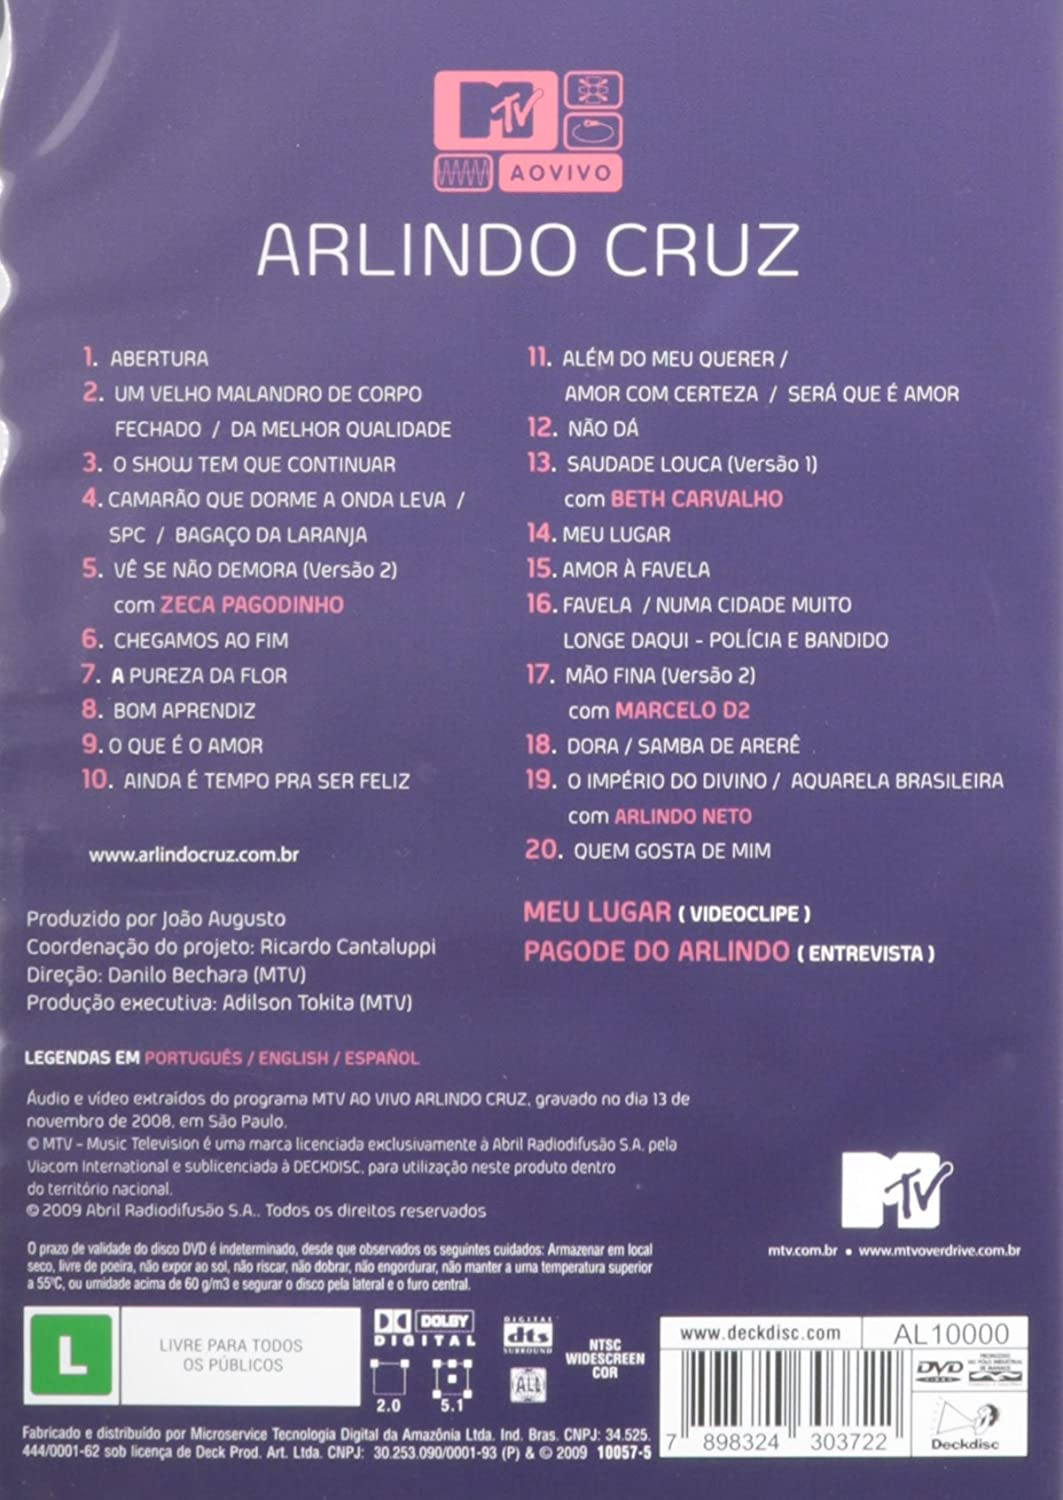 arlindo cruz mtv audio dvd